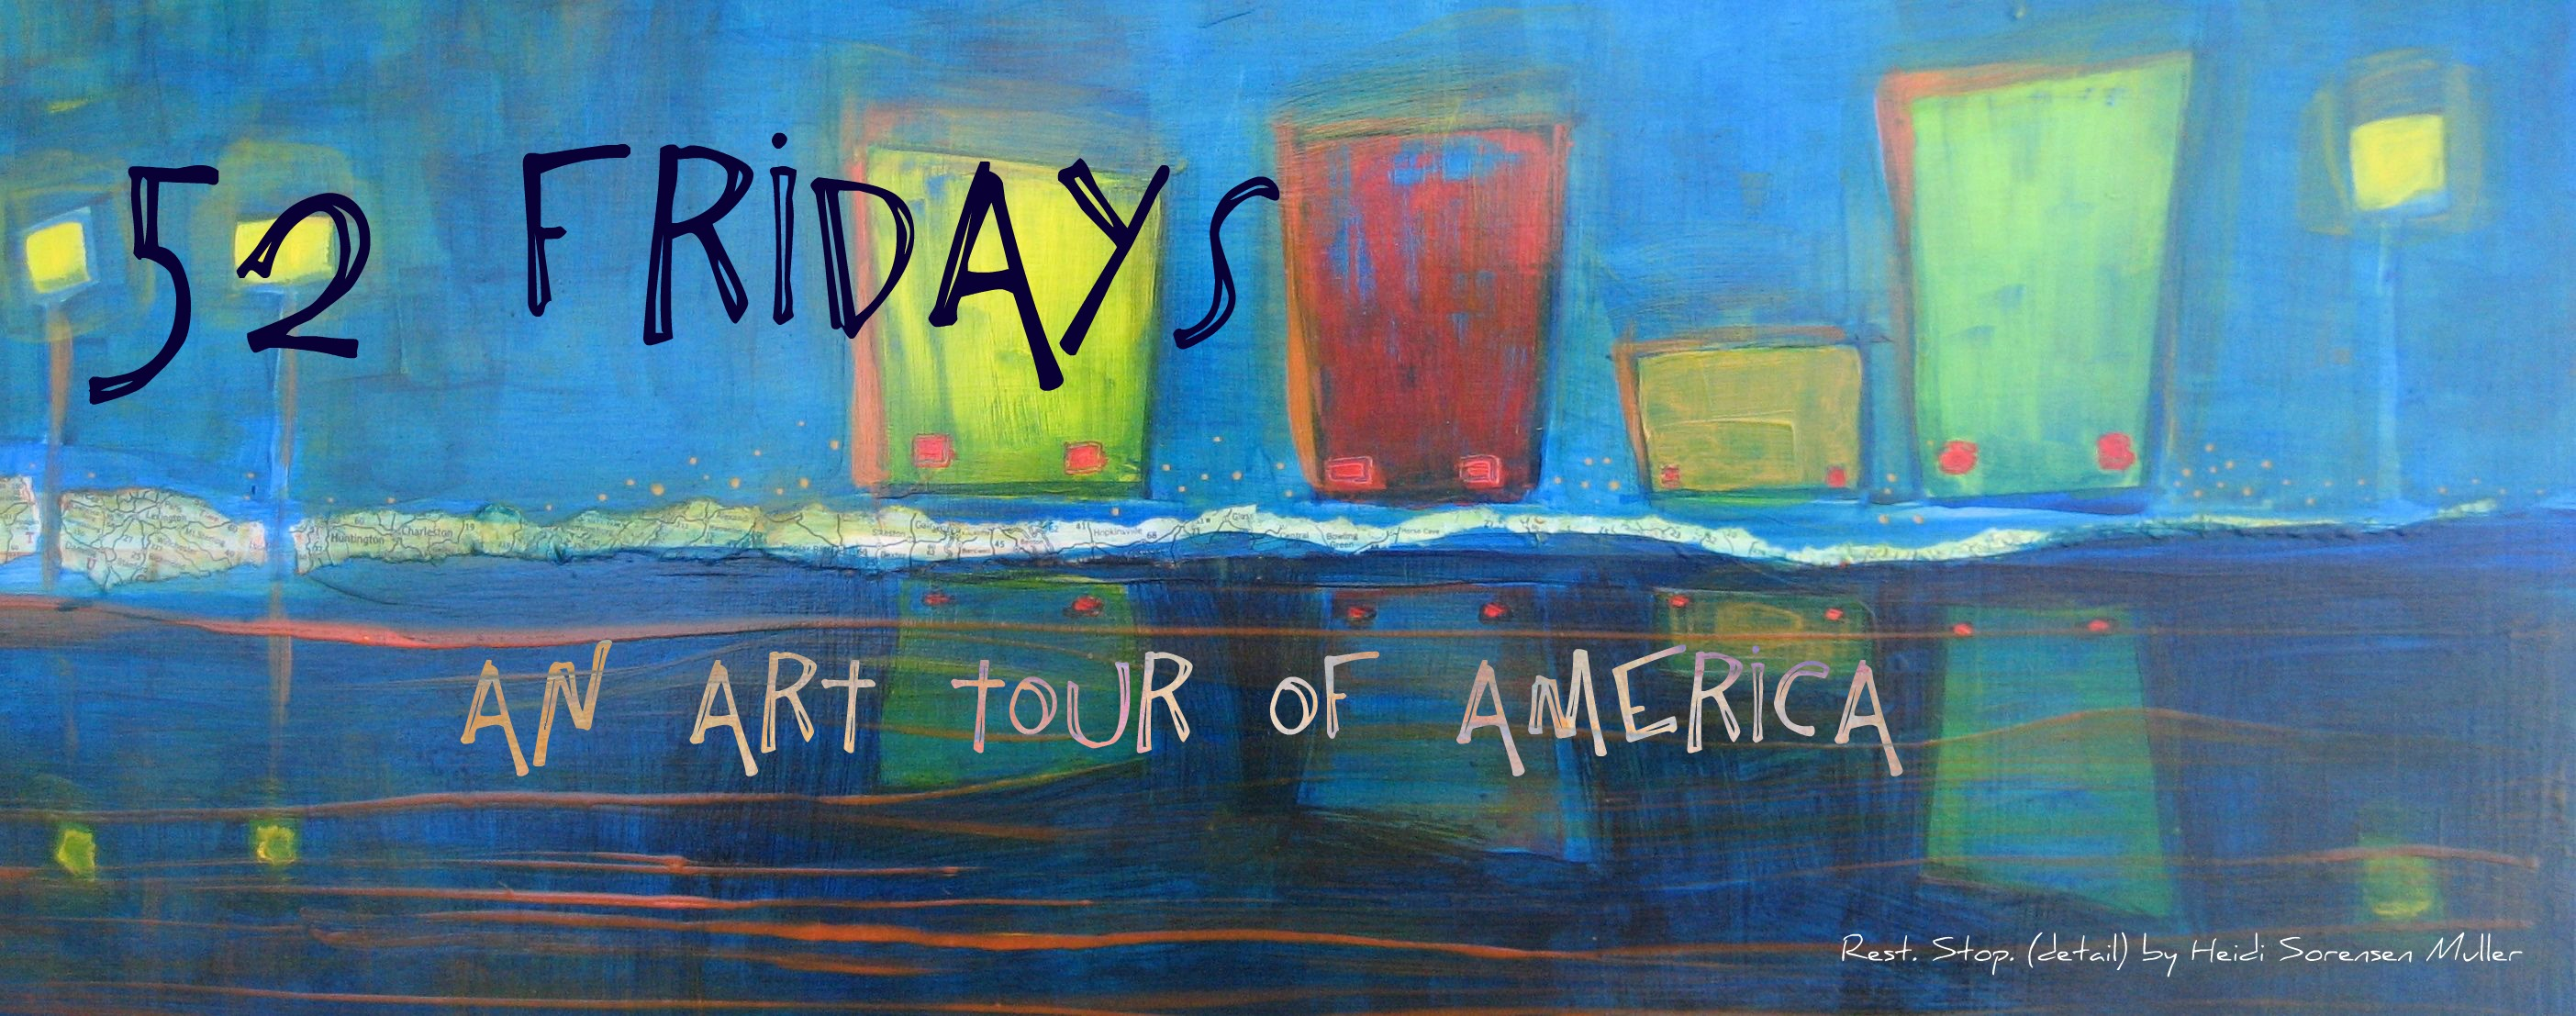 Art tour of american states